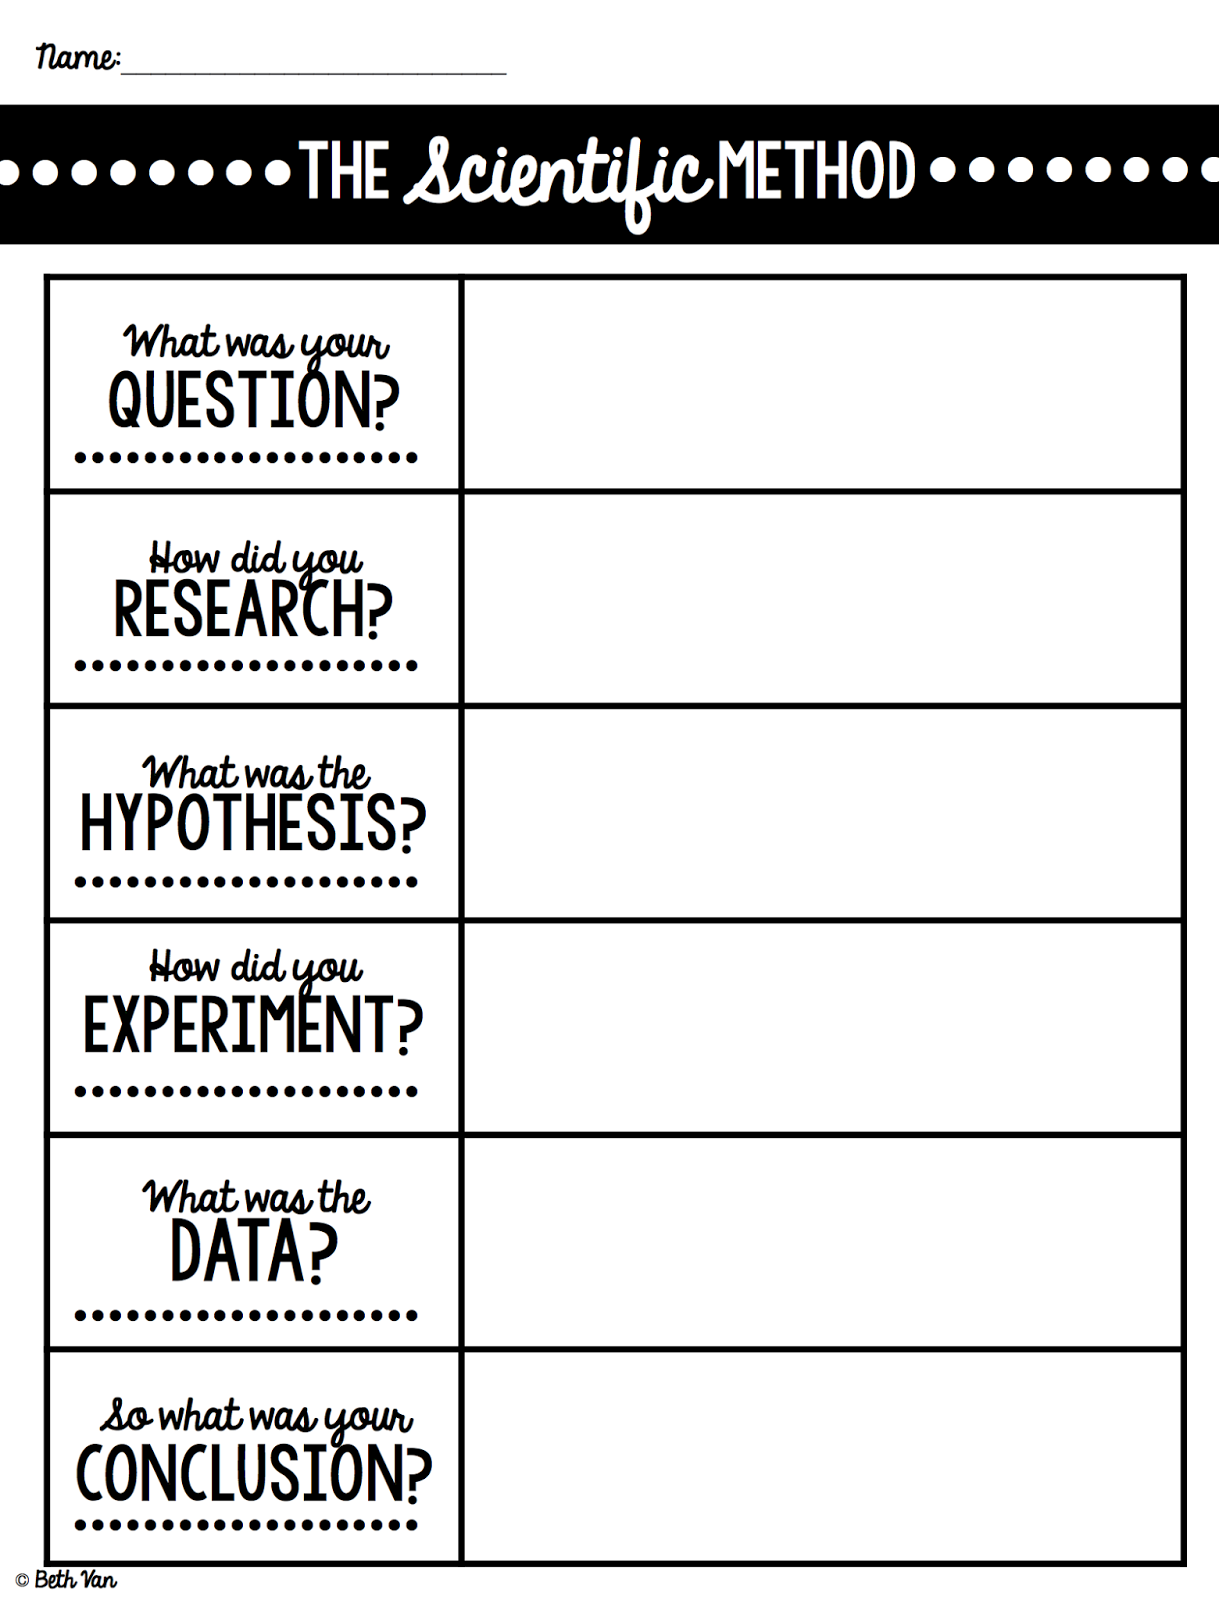 Worksheets Mythbusters Scientific Method Worksheet theteachyteacher can you walk on water scientific method awesomeness anyways science is awesome and grab this handy dandy printable about the here i couldnt decide past a